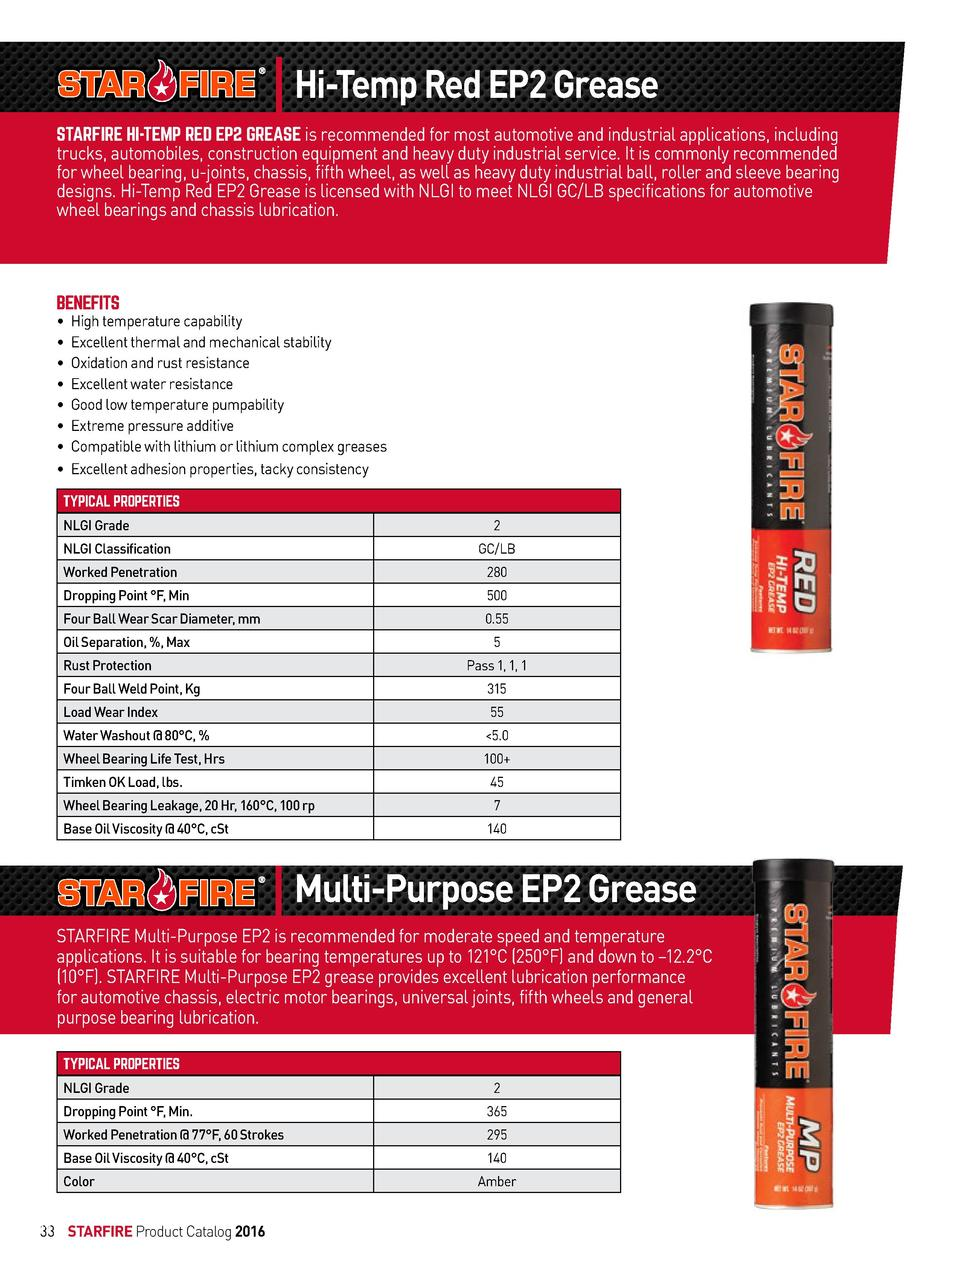 Hi-Temp Red EP2 Grease STARFIRE HI-TEMP RED EP2 GREASE is recommended for most automotive and industrial applications, inc...